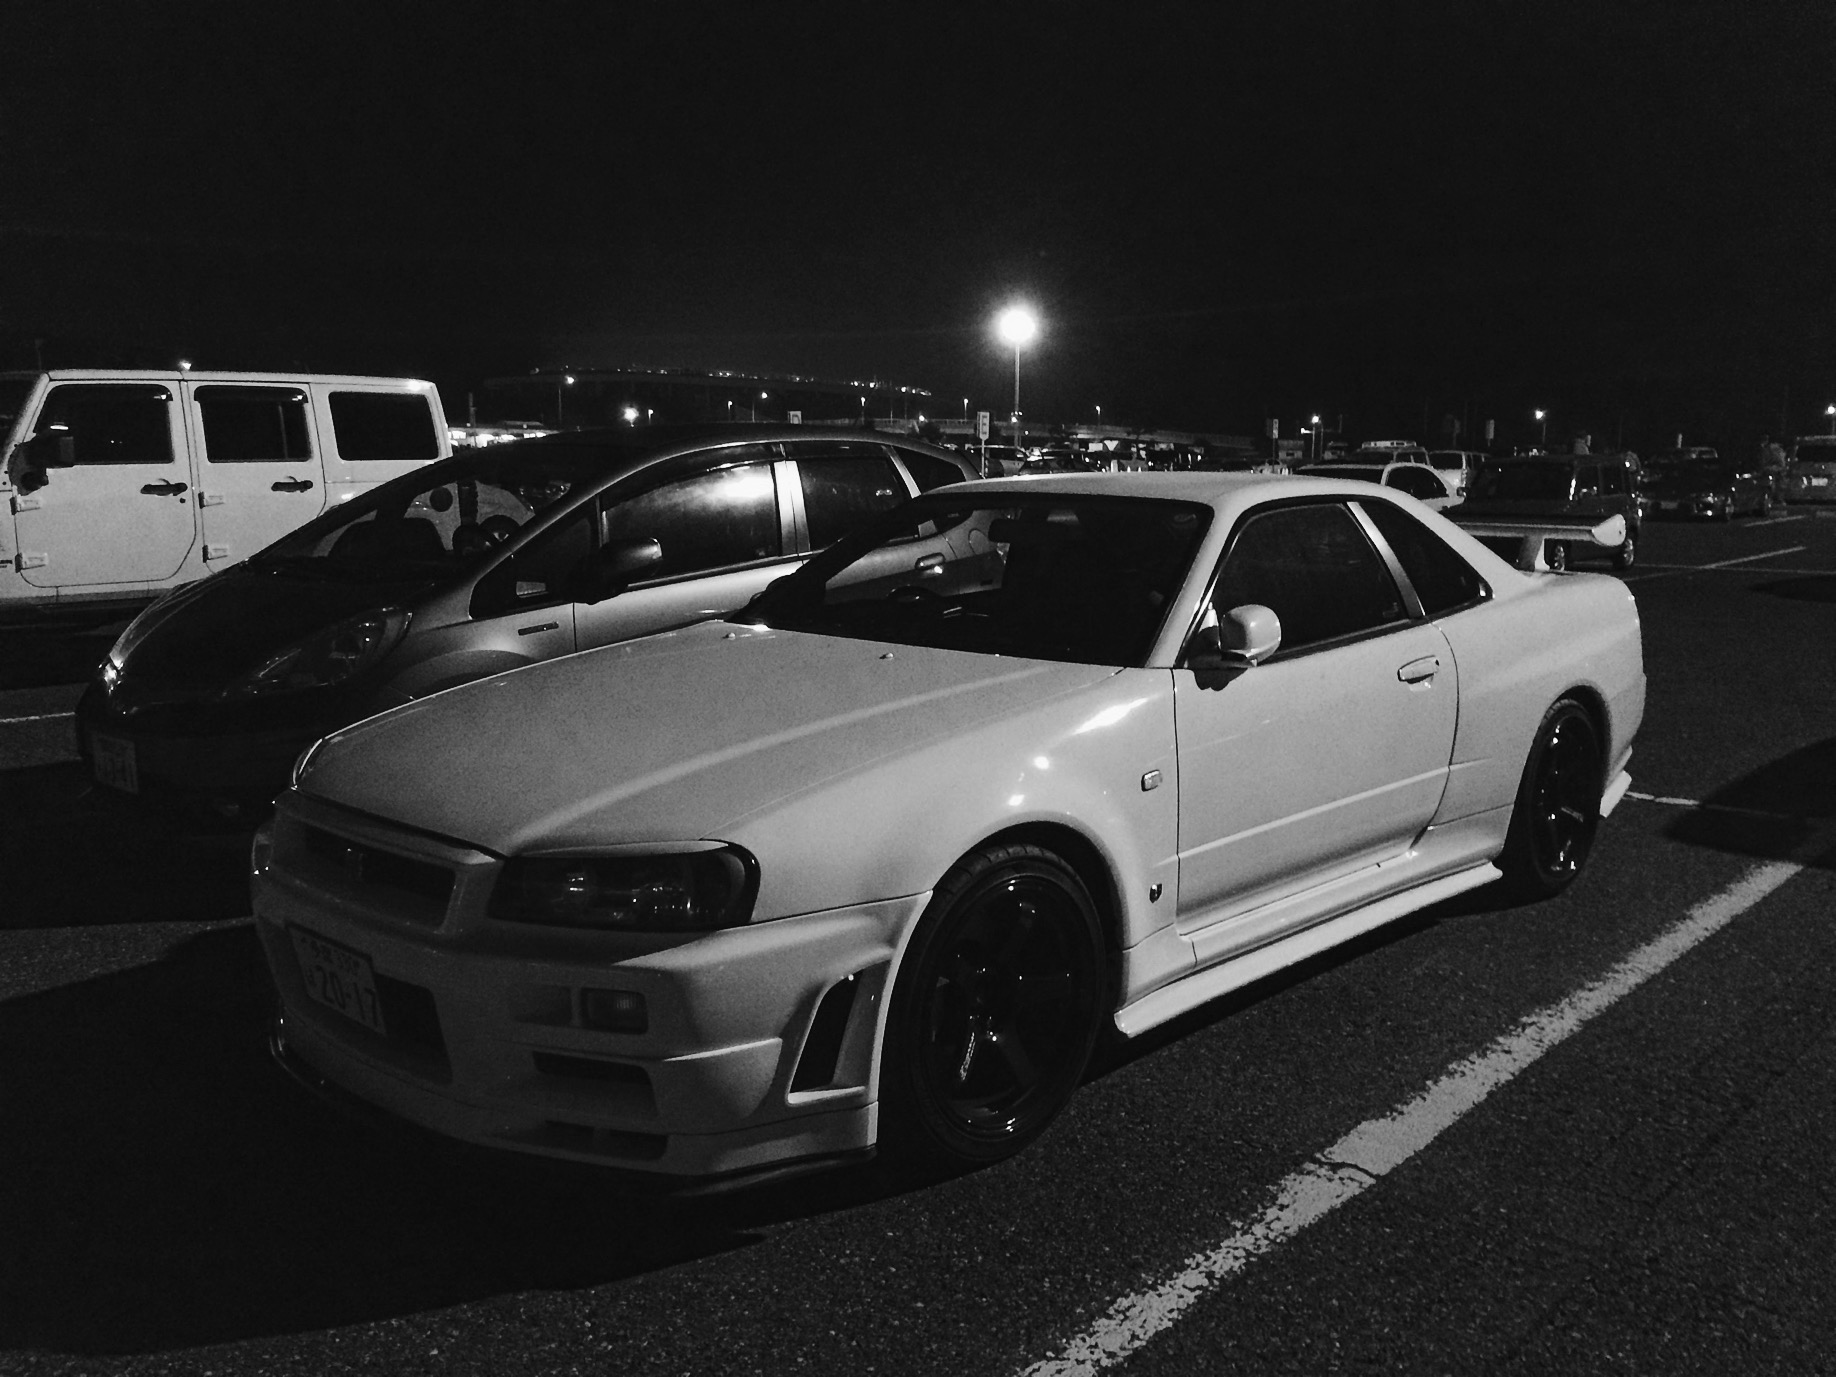 The other king of all cars. Spotted in the parking lot of Tokyo Auto Salon.